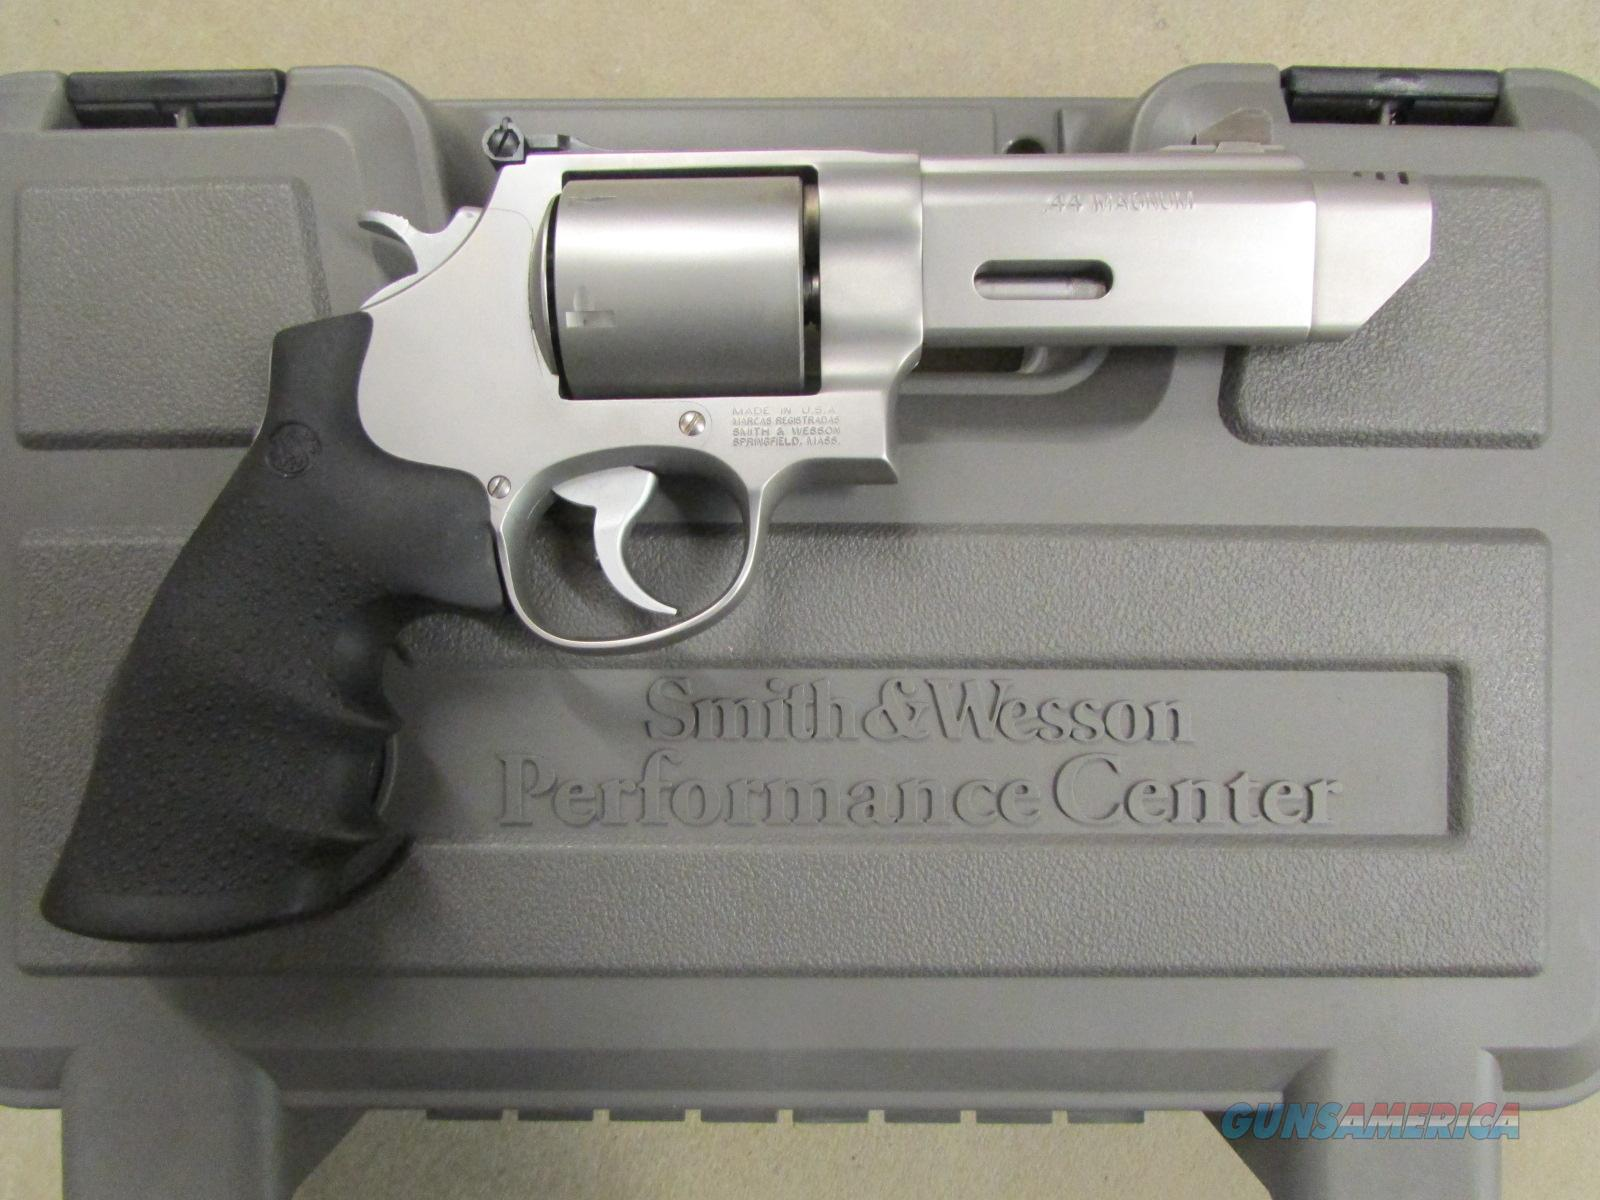 Smith & Wesson Model 629 V-Comp Performance Center .44 Magnum 170137  Guns > Pistols > Smith & Wesson Revolvers > Performance Center